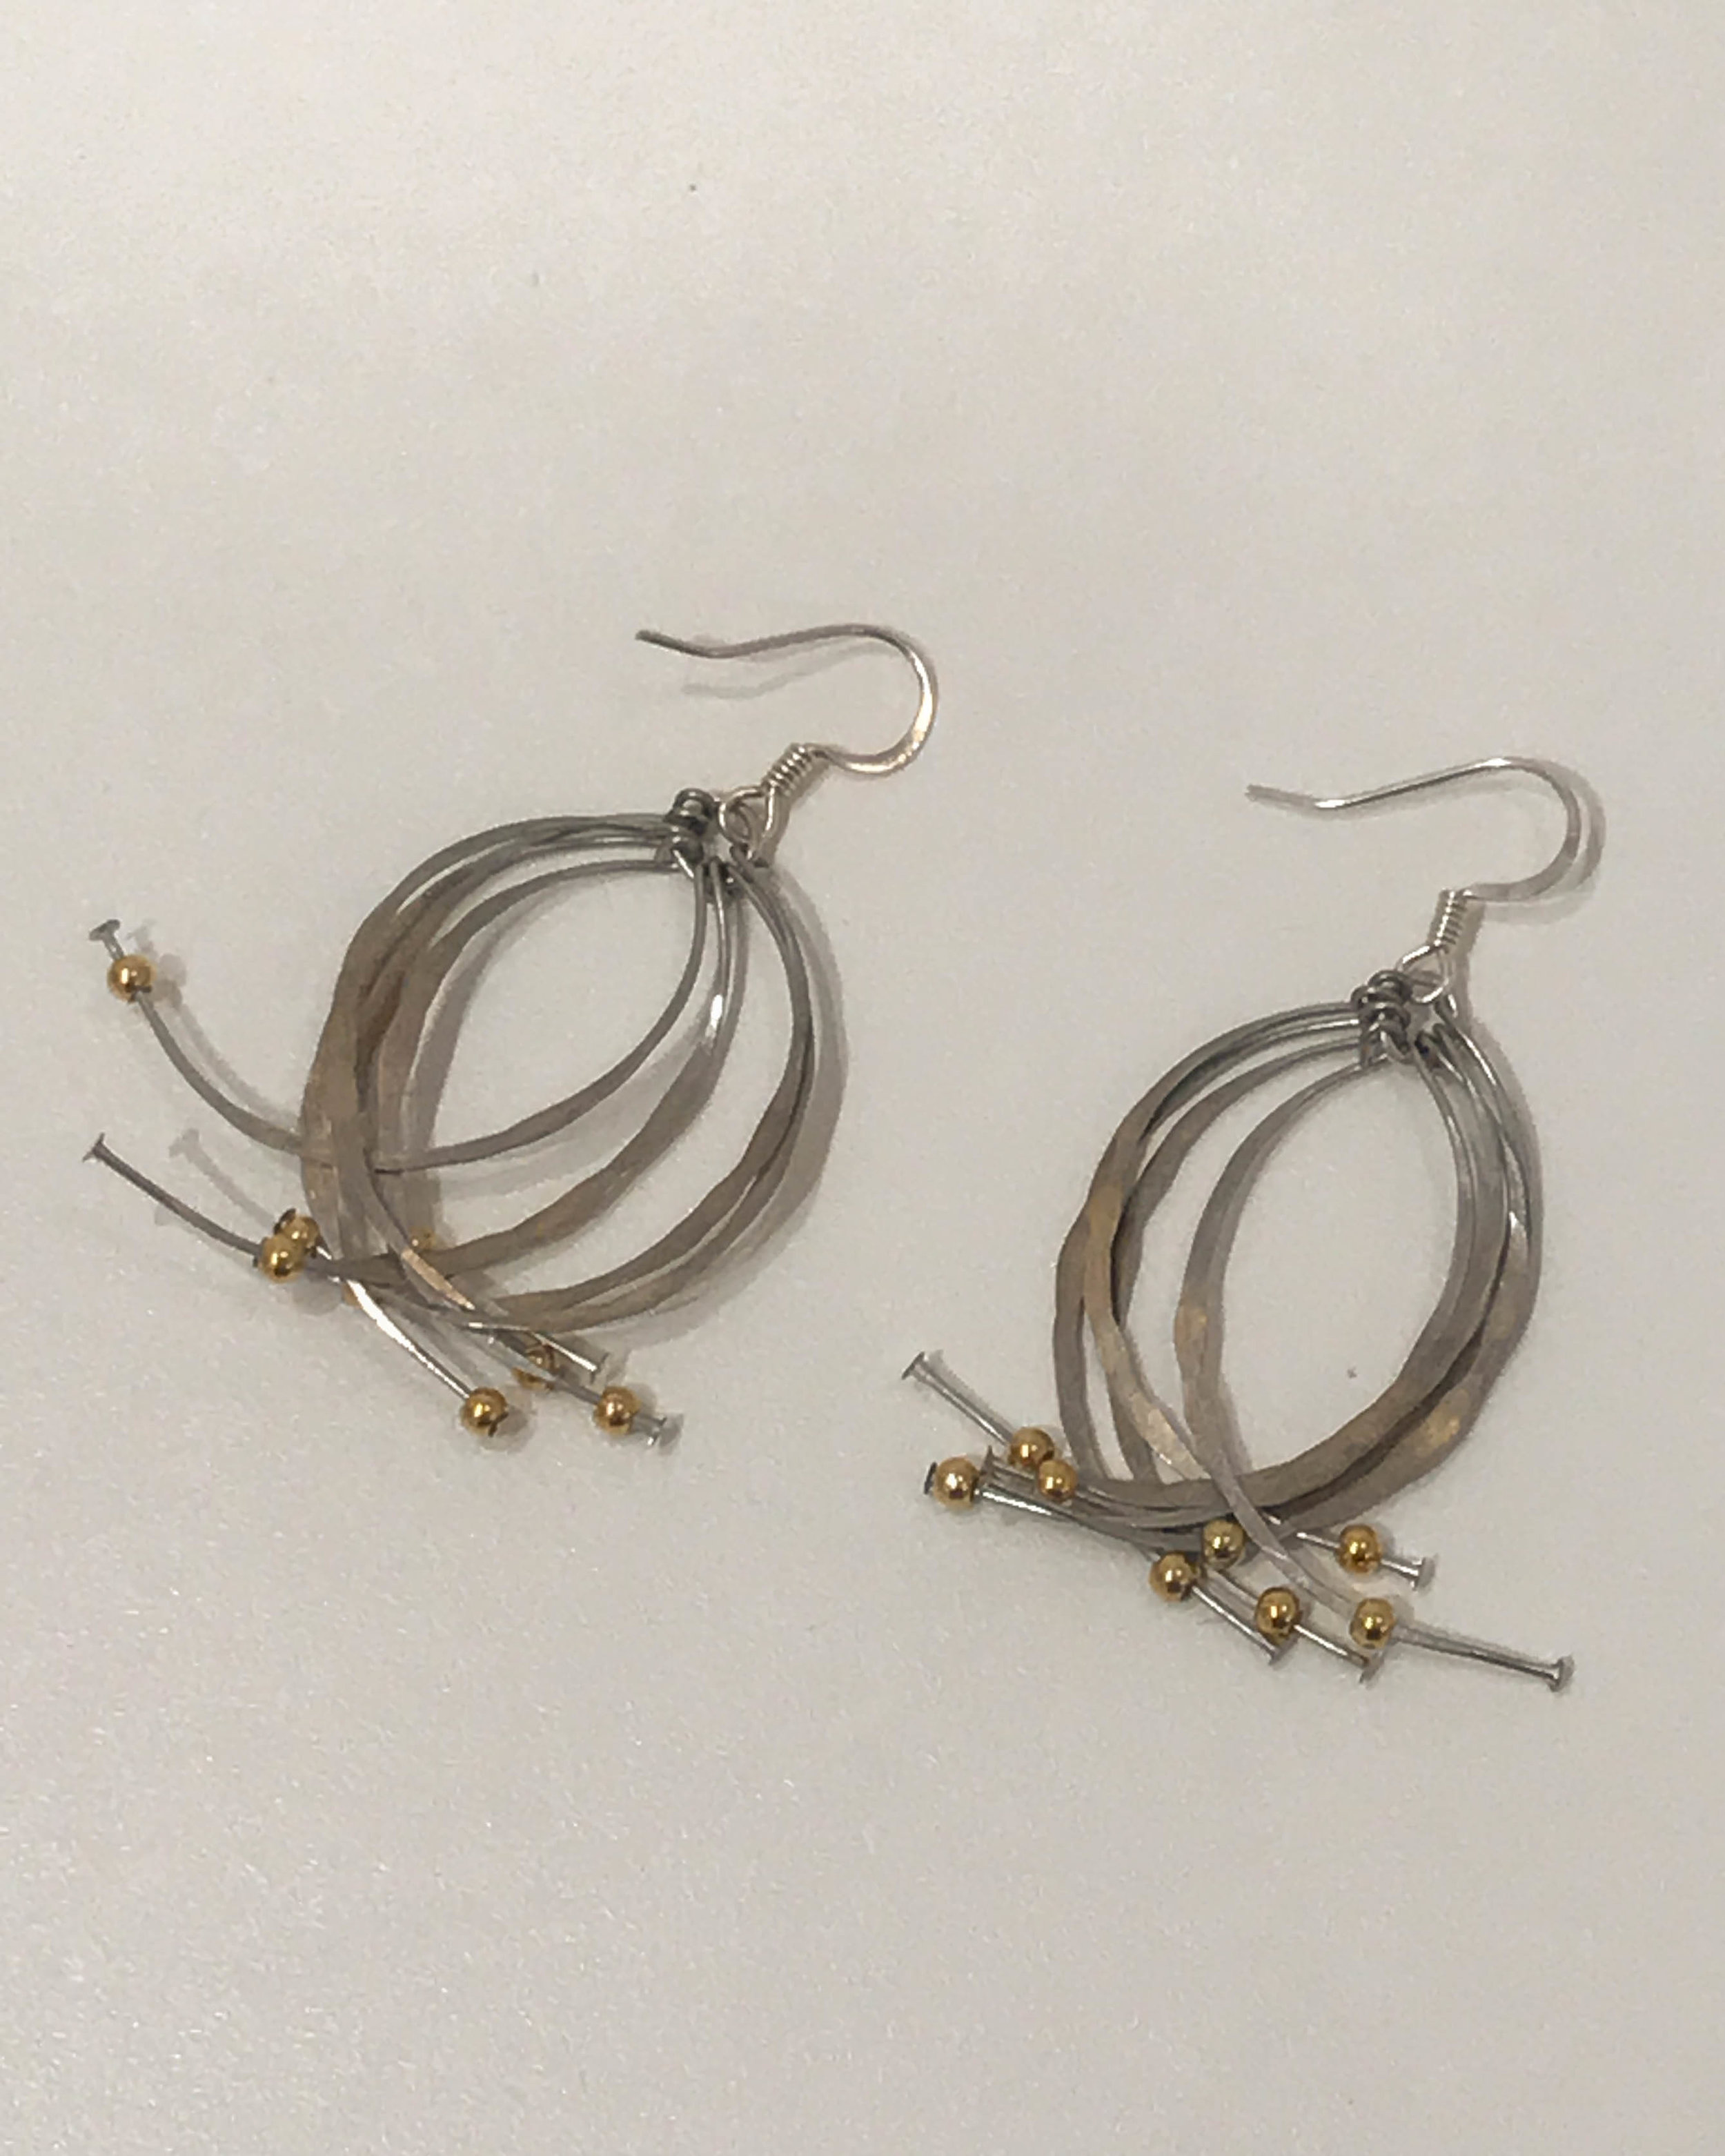 Two-tone Kinetic earrings , silver and gold-filled beads, $45